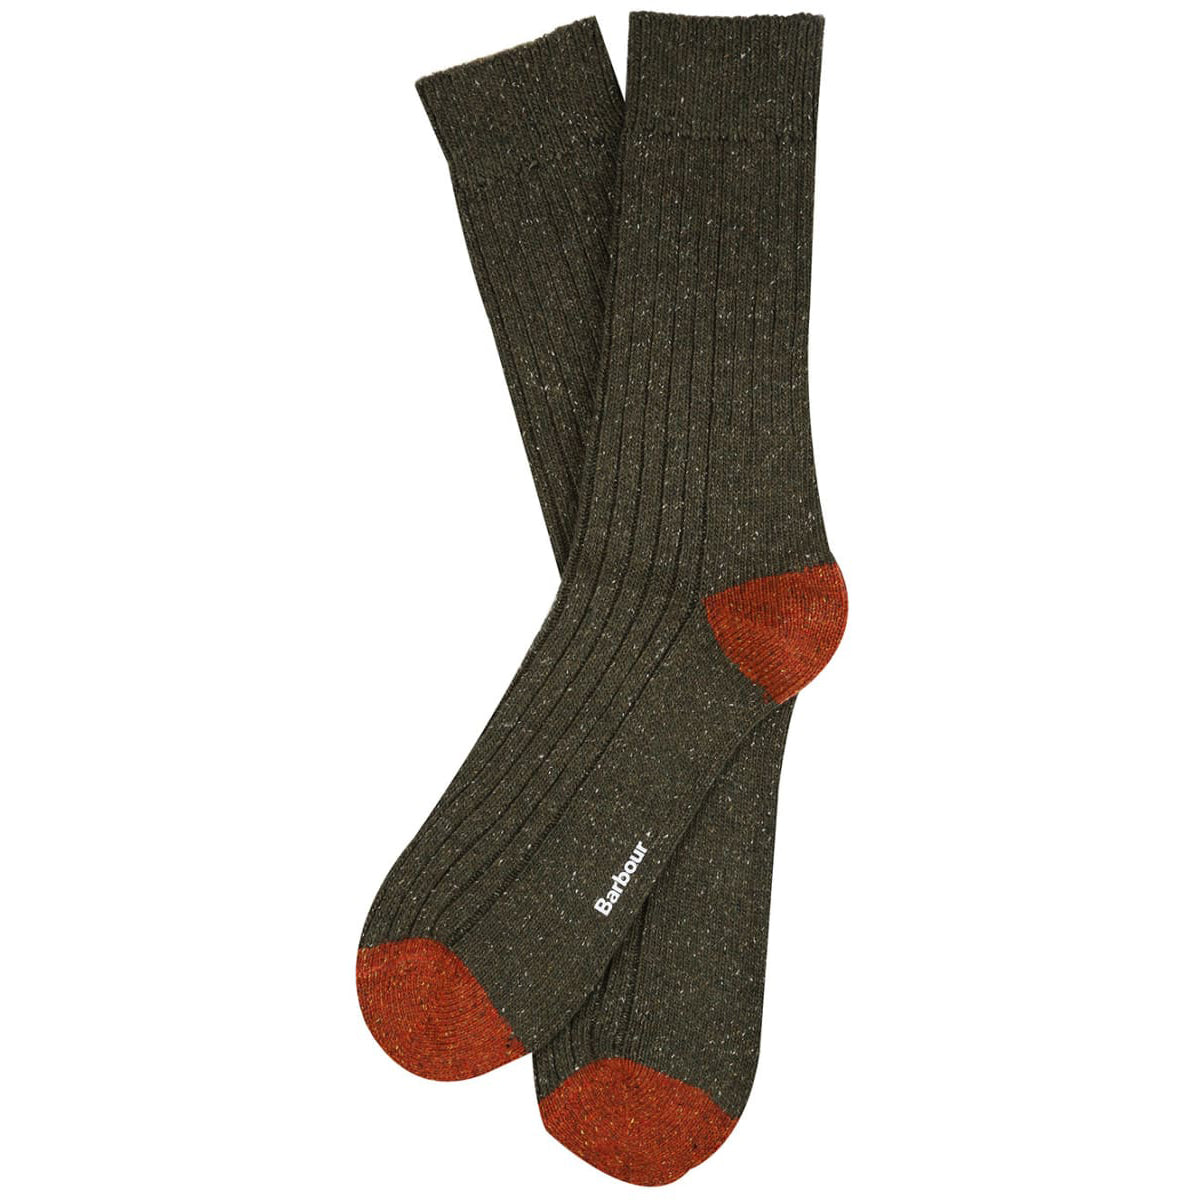 Barbour Houghton Sock Olive and Burnt Orange